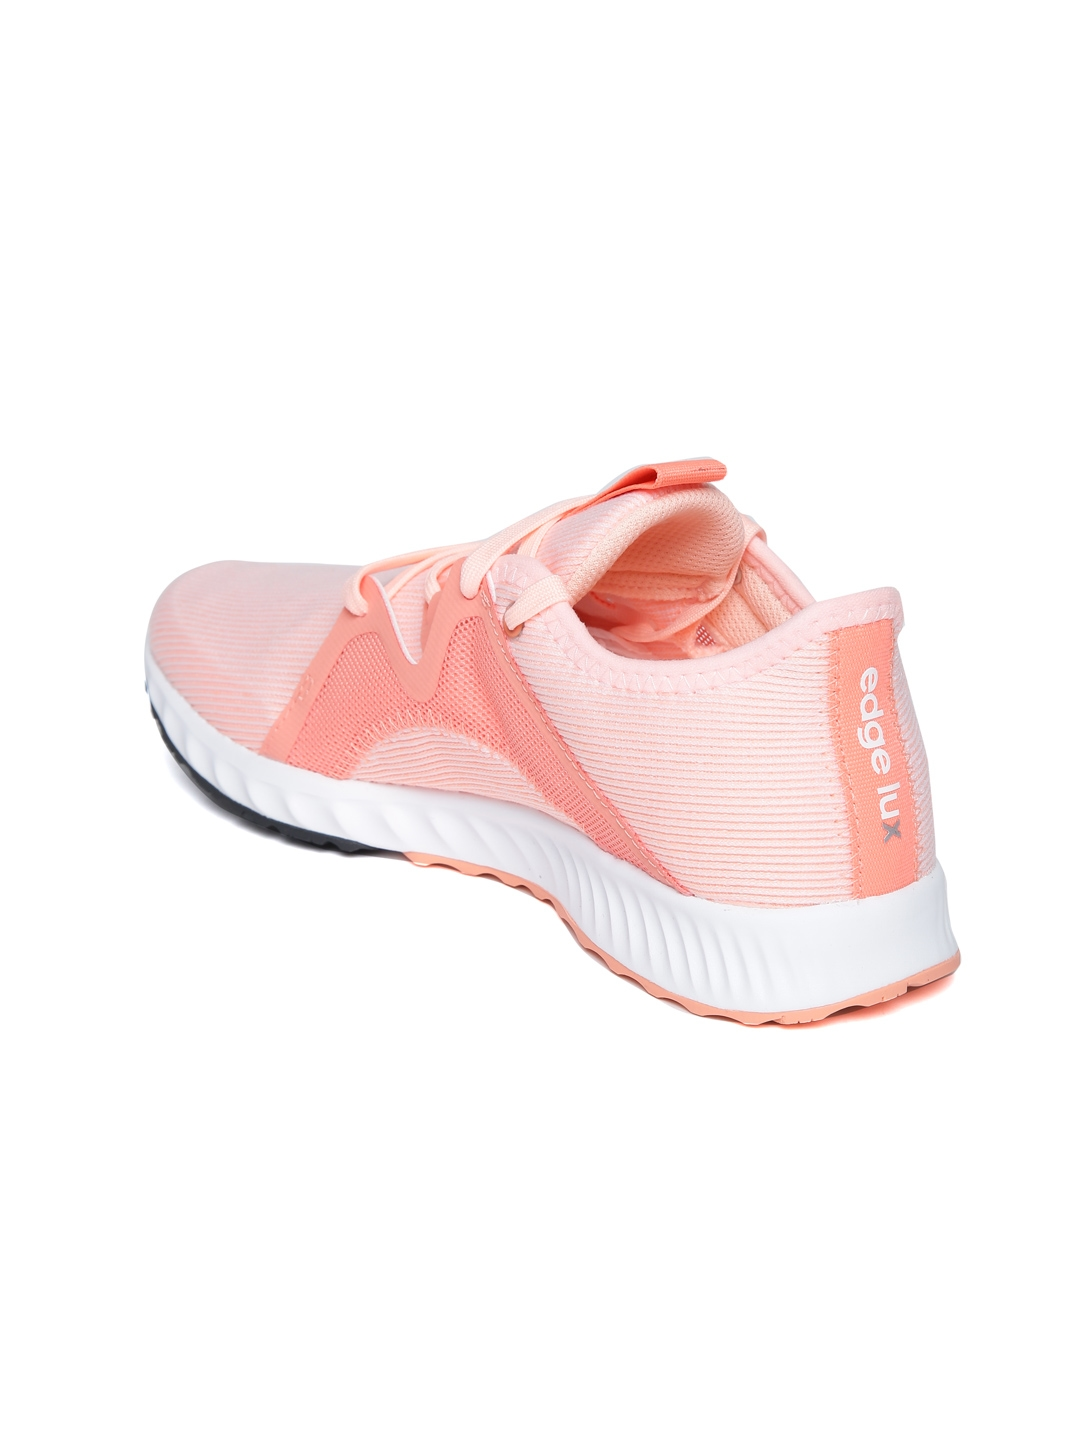 Buy ADIDAS Women Peach Coloured Edge Lux 2 Colourblocked Running ... 9a4d22773